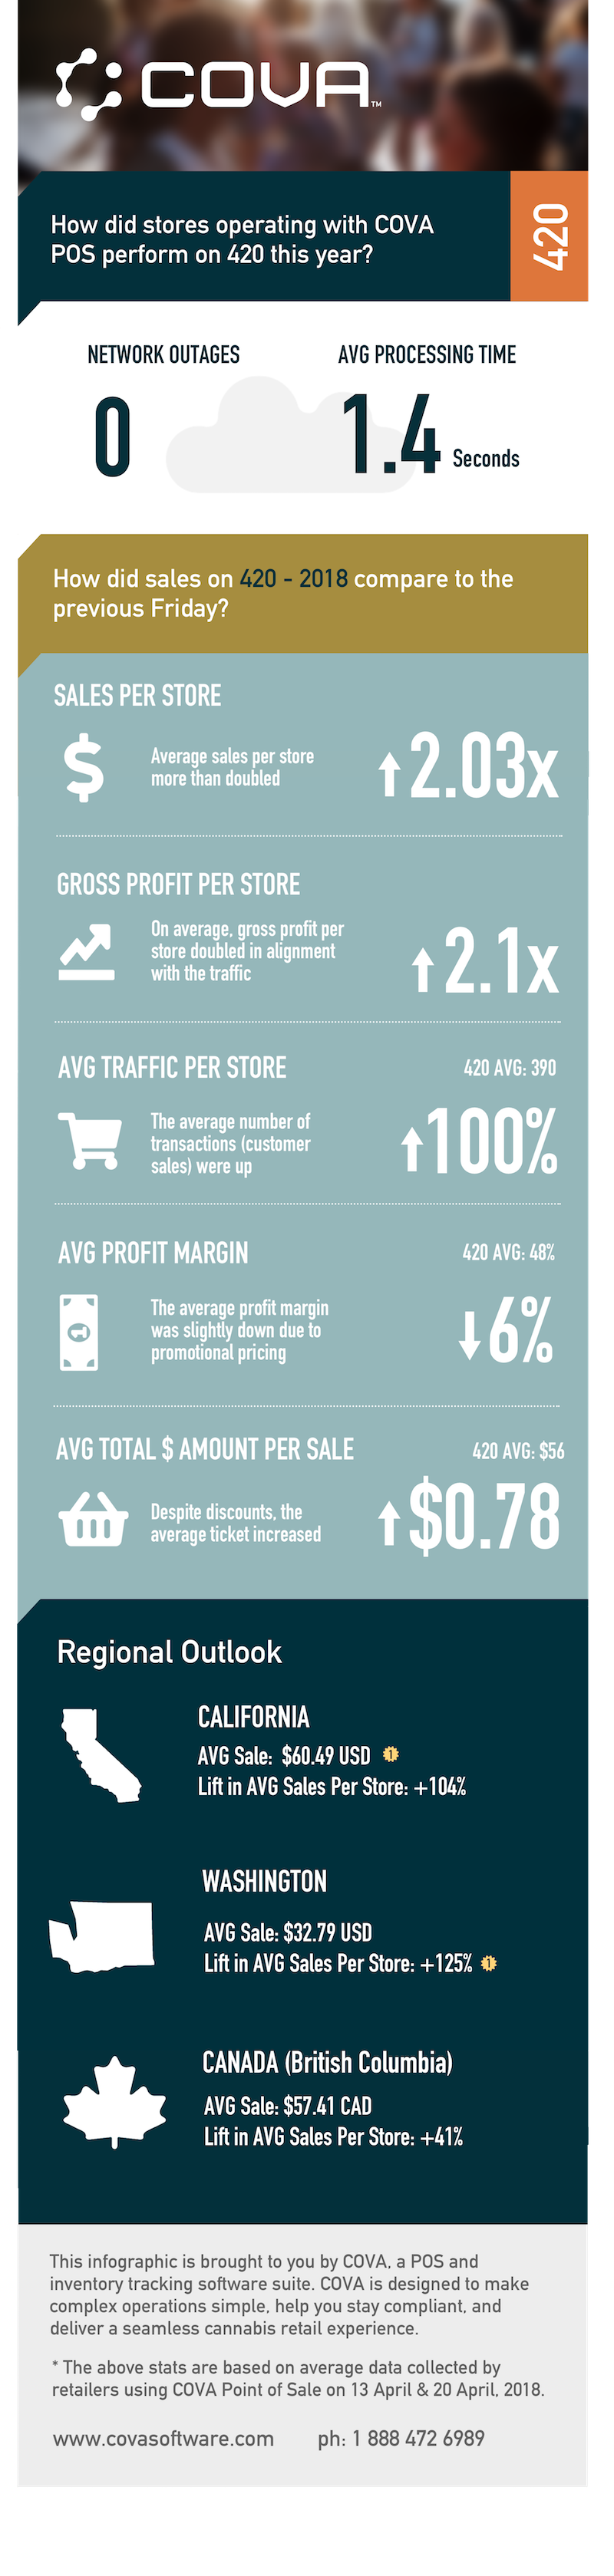 Cova-420-2018-Infographic-1.png